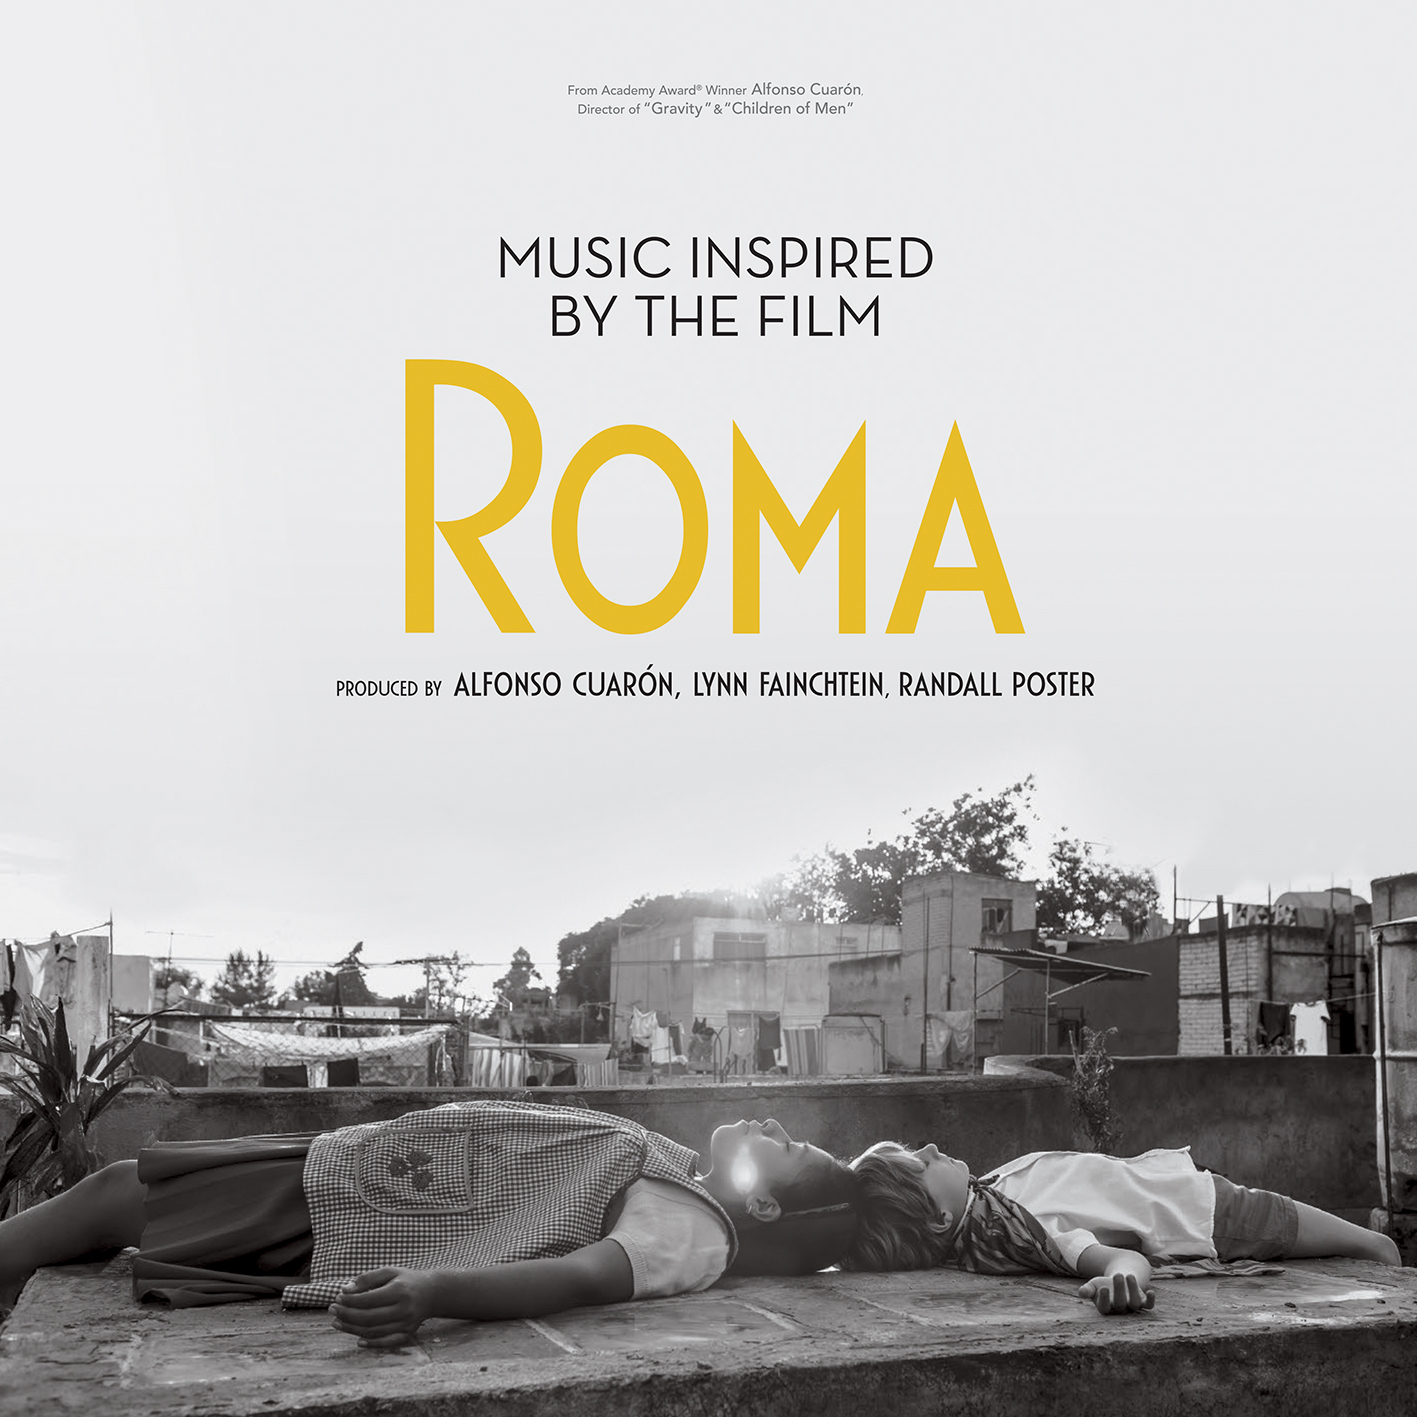 music inspired by the film romaalbum cover artwork